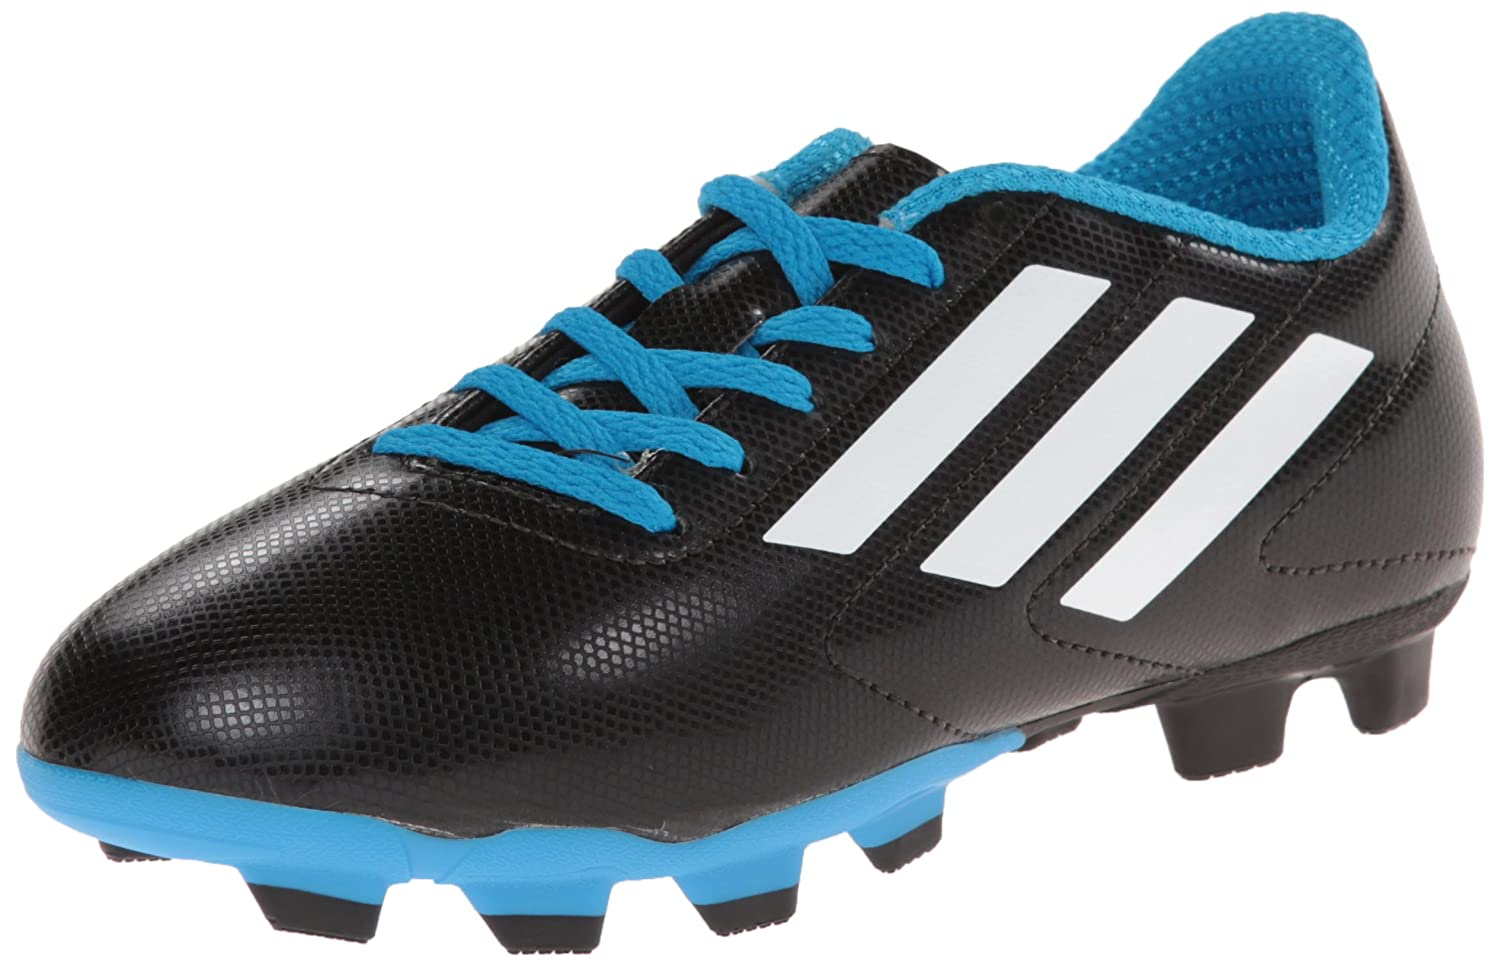 Adidas Performance Conquisto Firm-Ground J Soccer Cleat (Little Kid/Big Kid) adidas Kids Performance Footwear Conquisto FG J - K